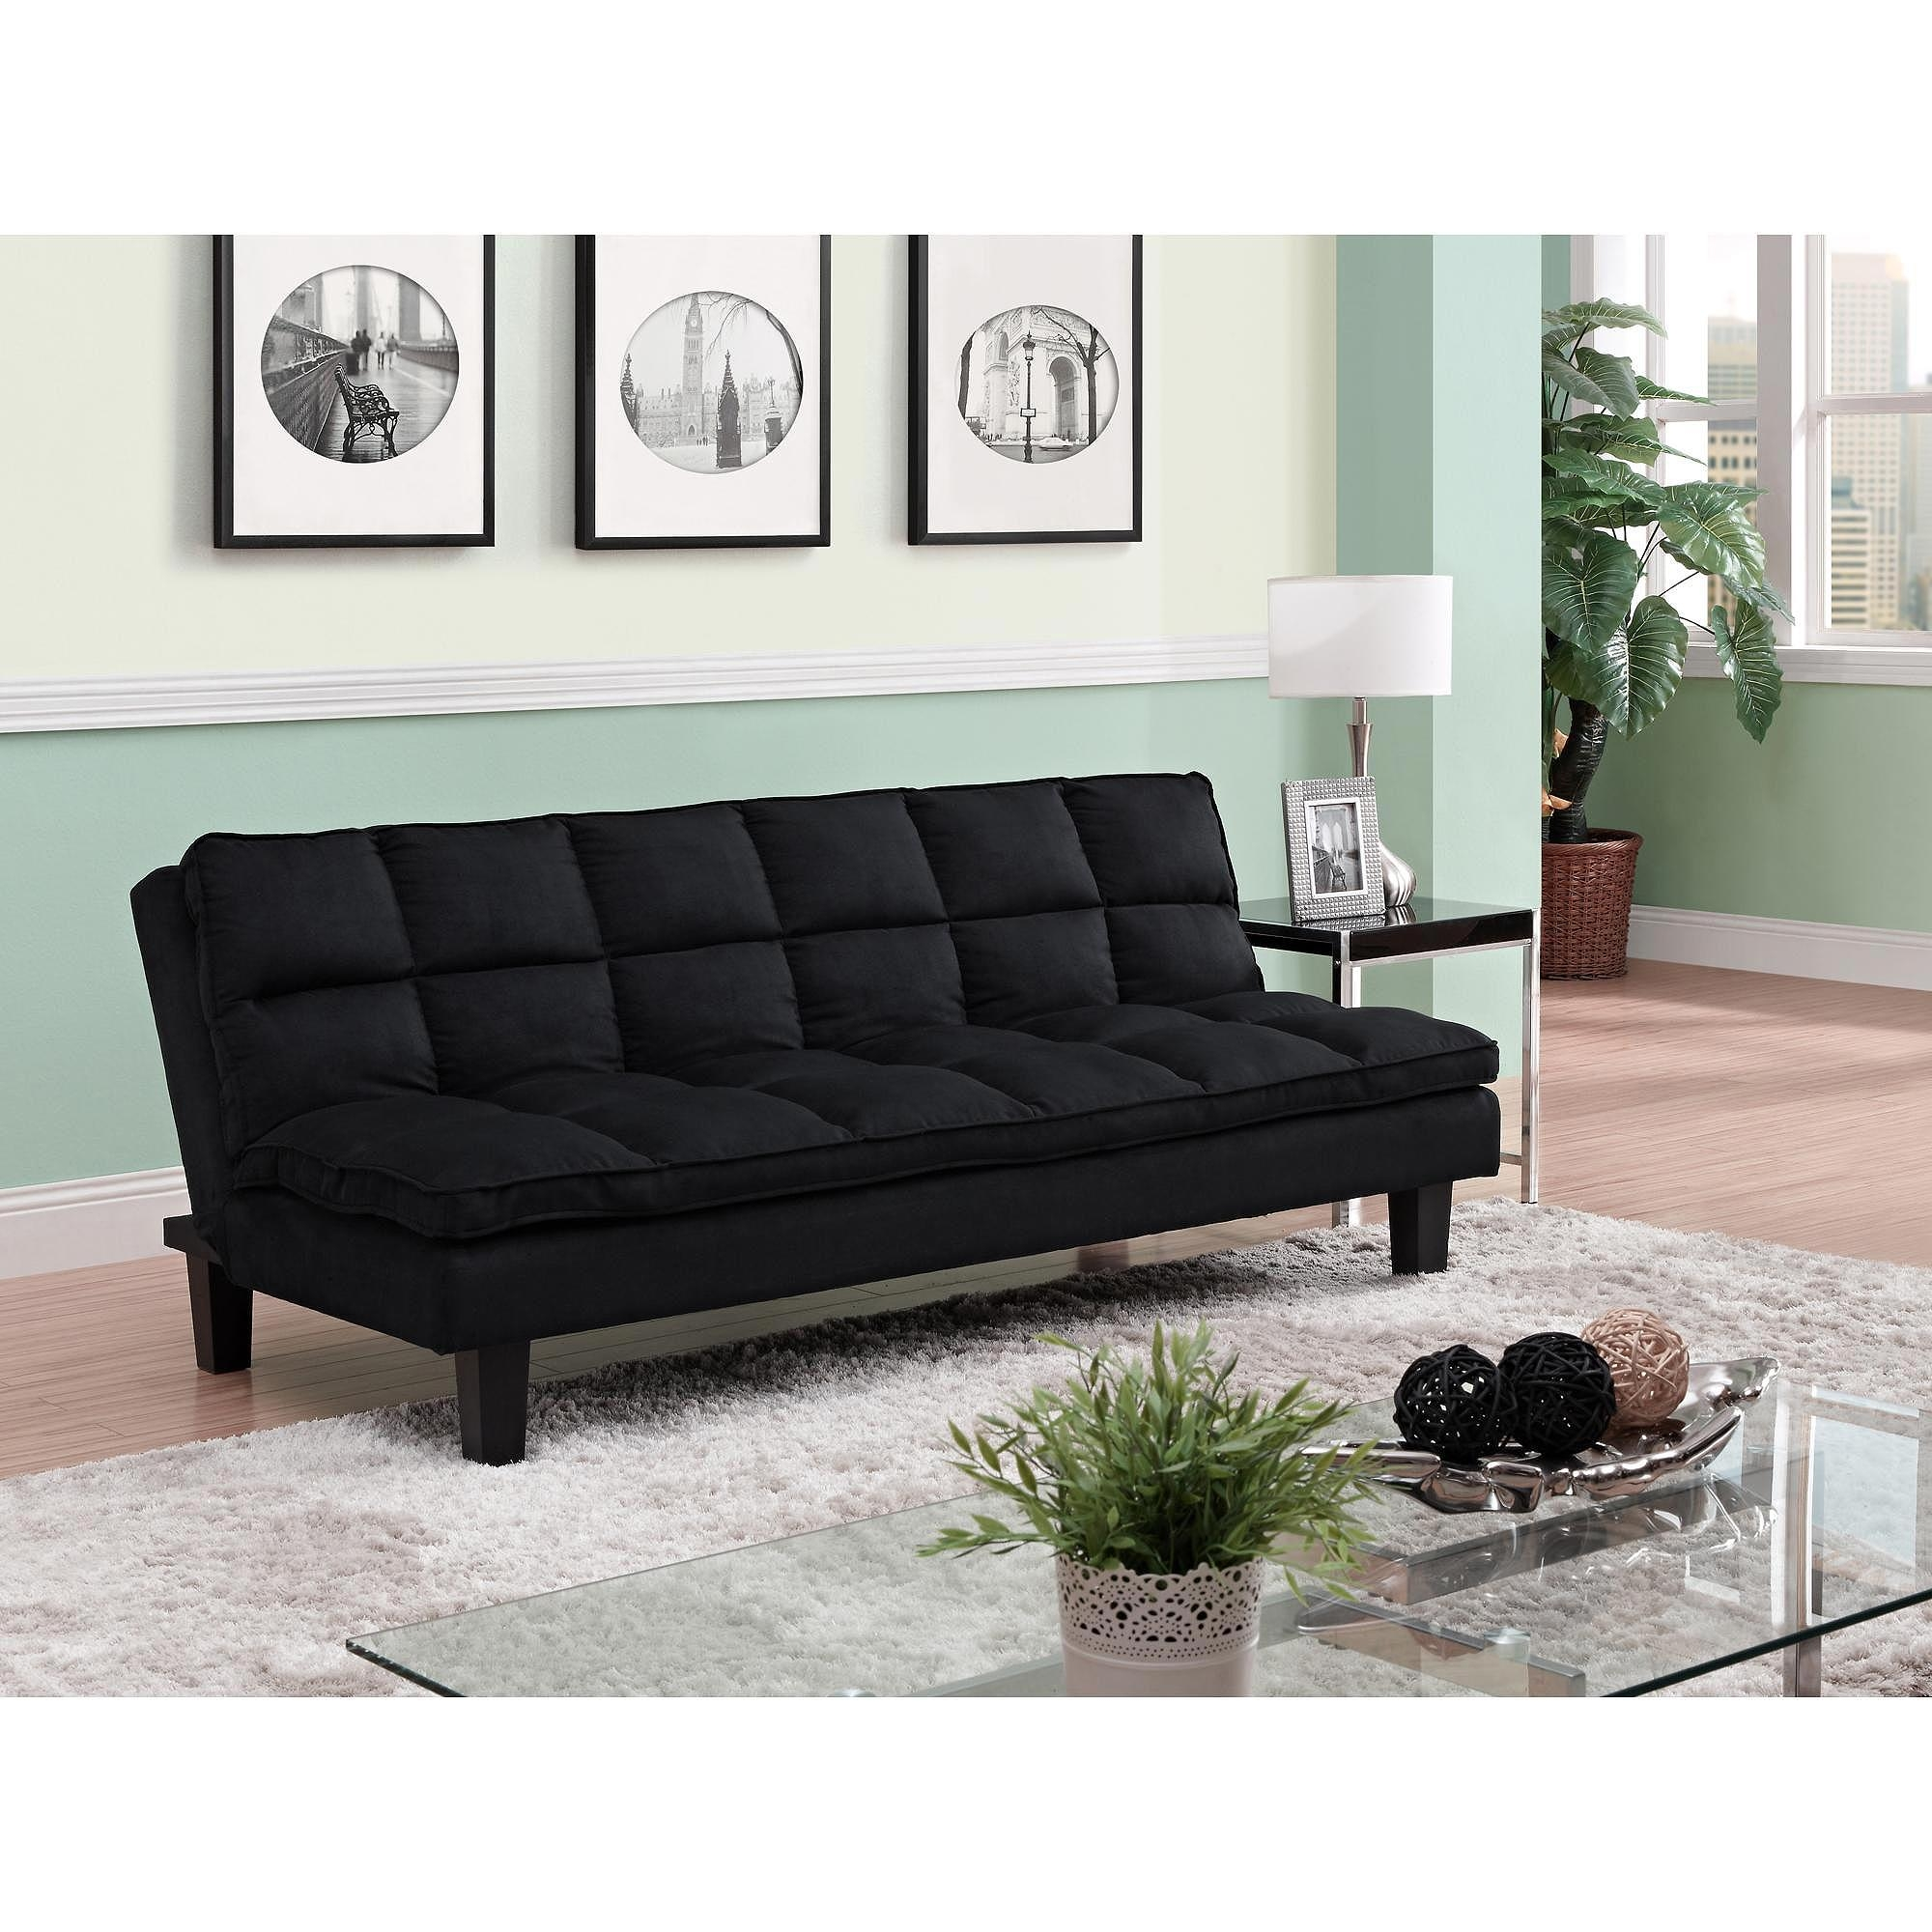 Sofa: Modern Look With A Low Profile Style With Walmart Sofa Bed In Convertible Futon Sofa Beds (Image 17 of 20)